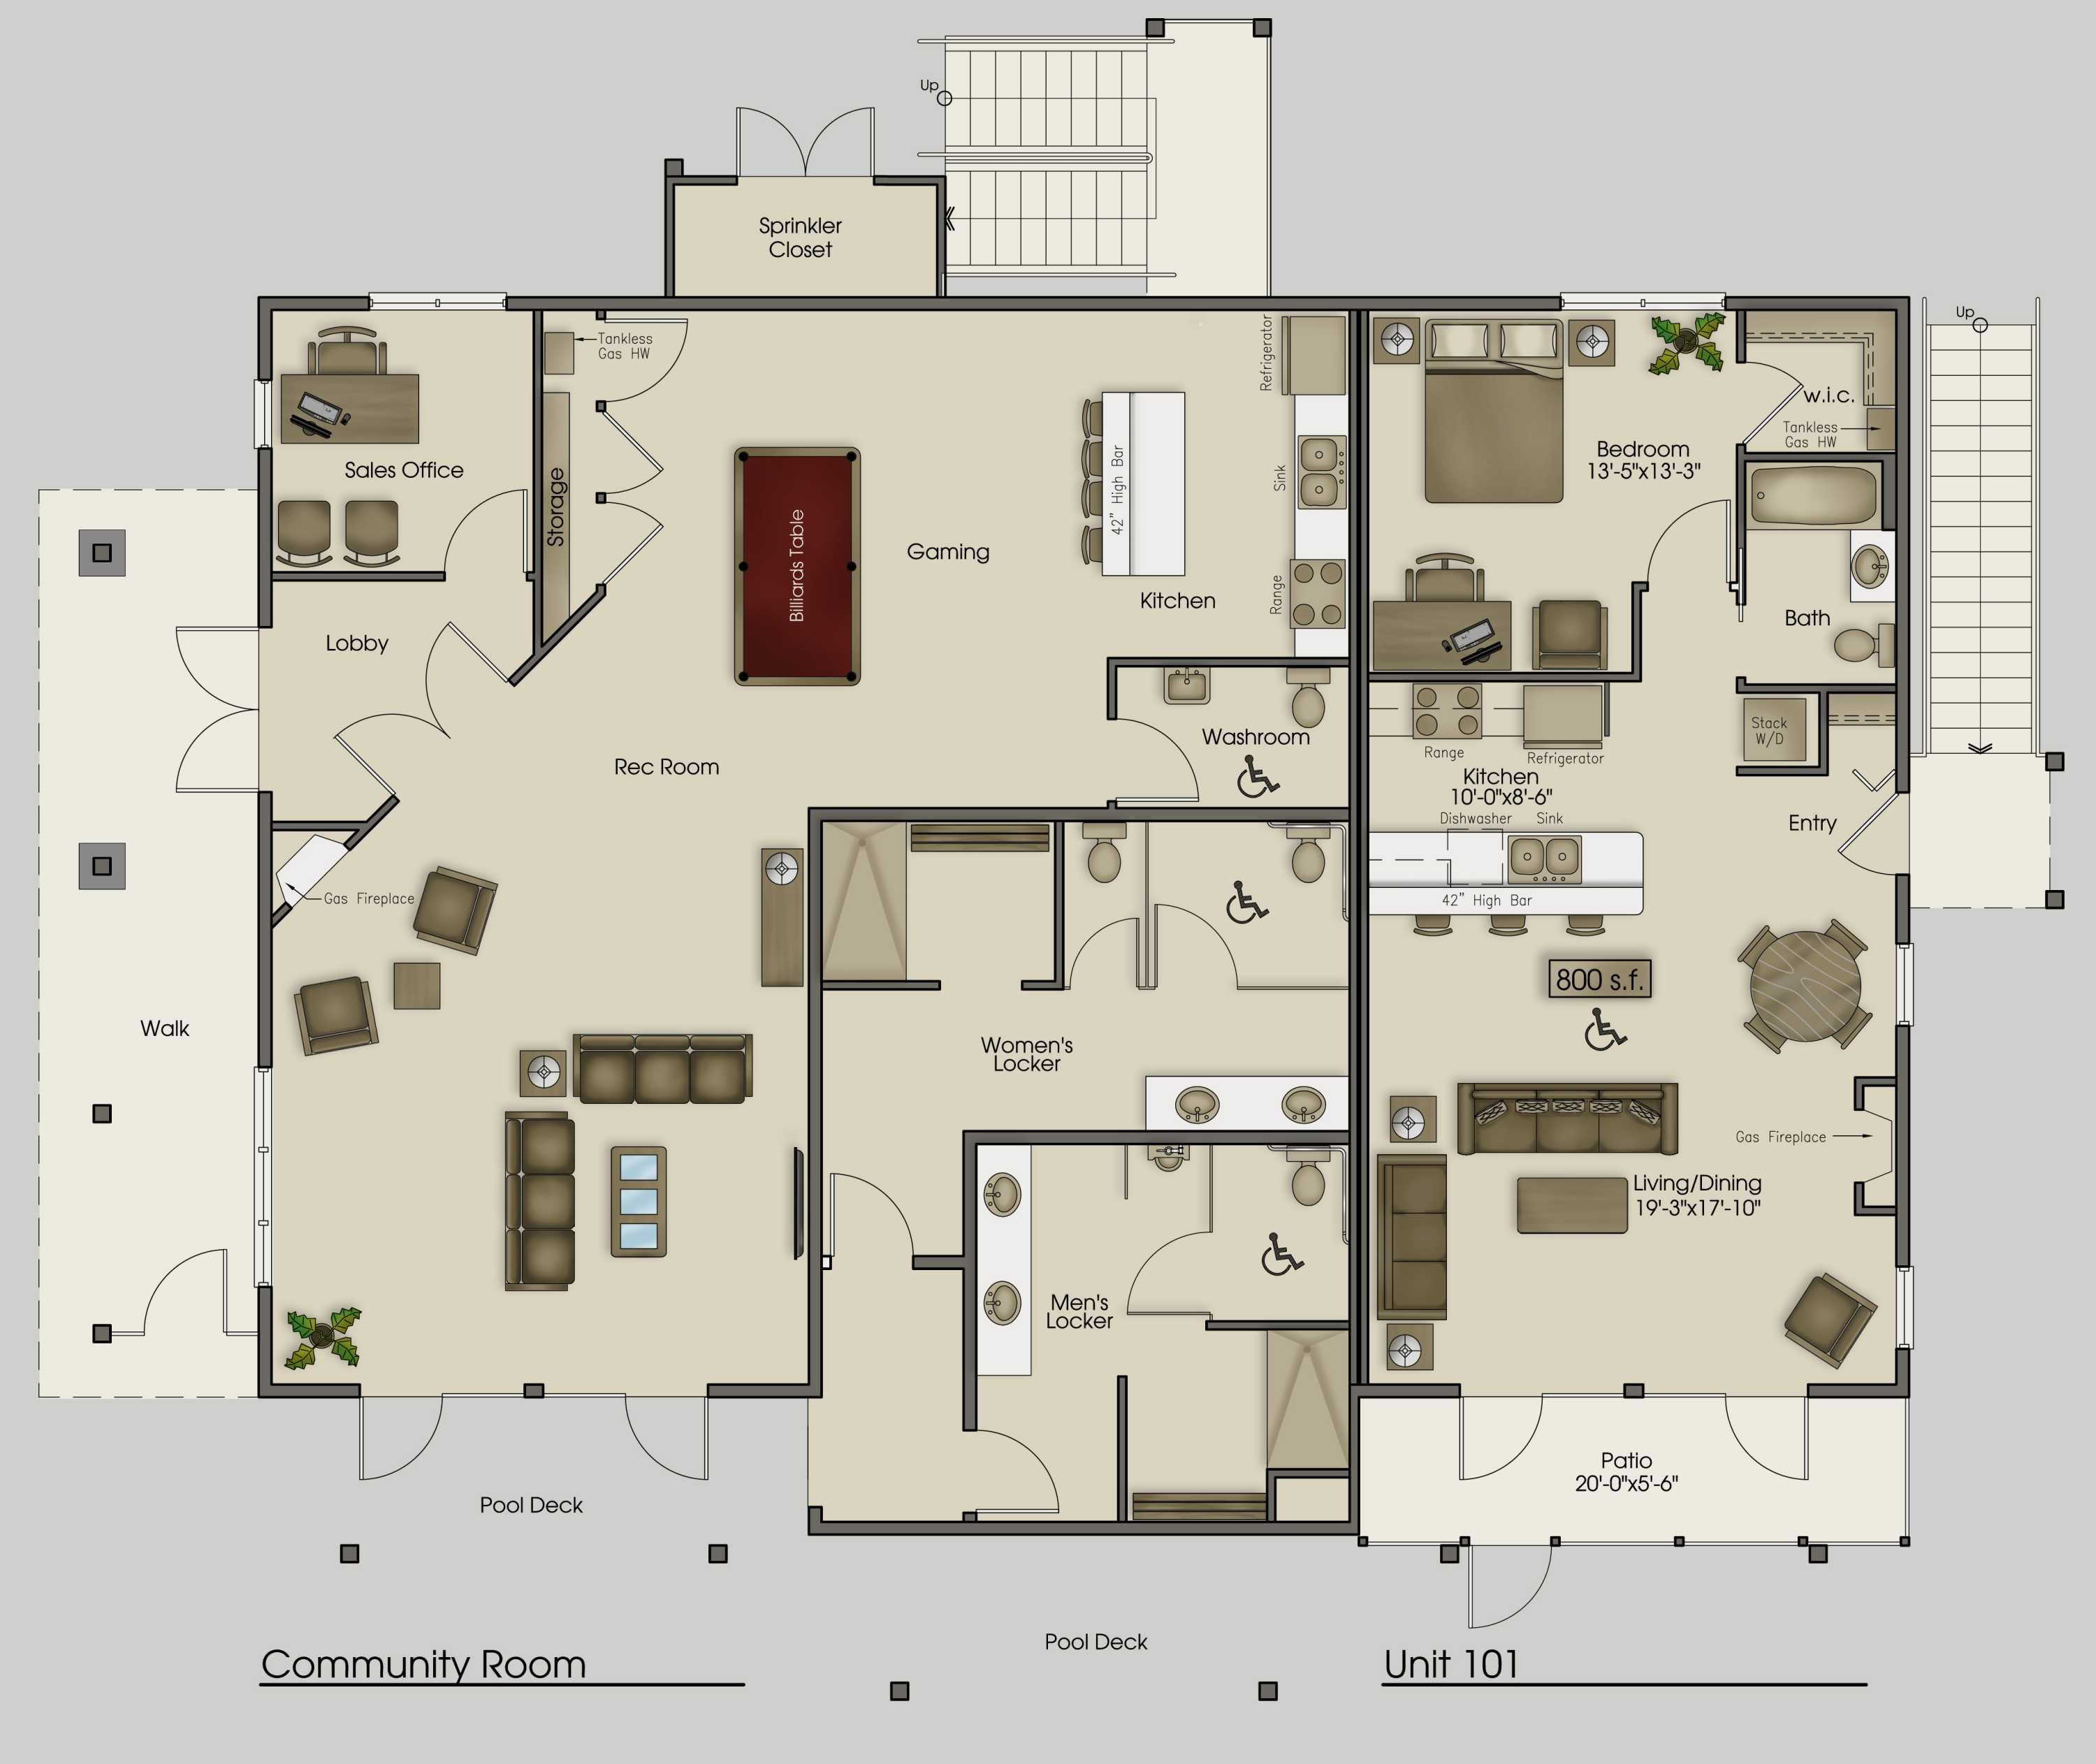 house planner free about remodel home decor ideas and acquire ... on floor plan software free, micro house plans free, l home bar plans free, room planner templates free, diy planner free,